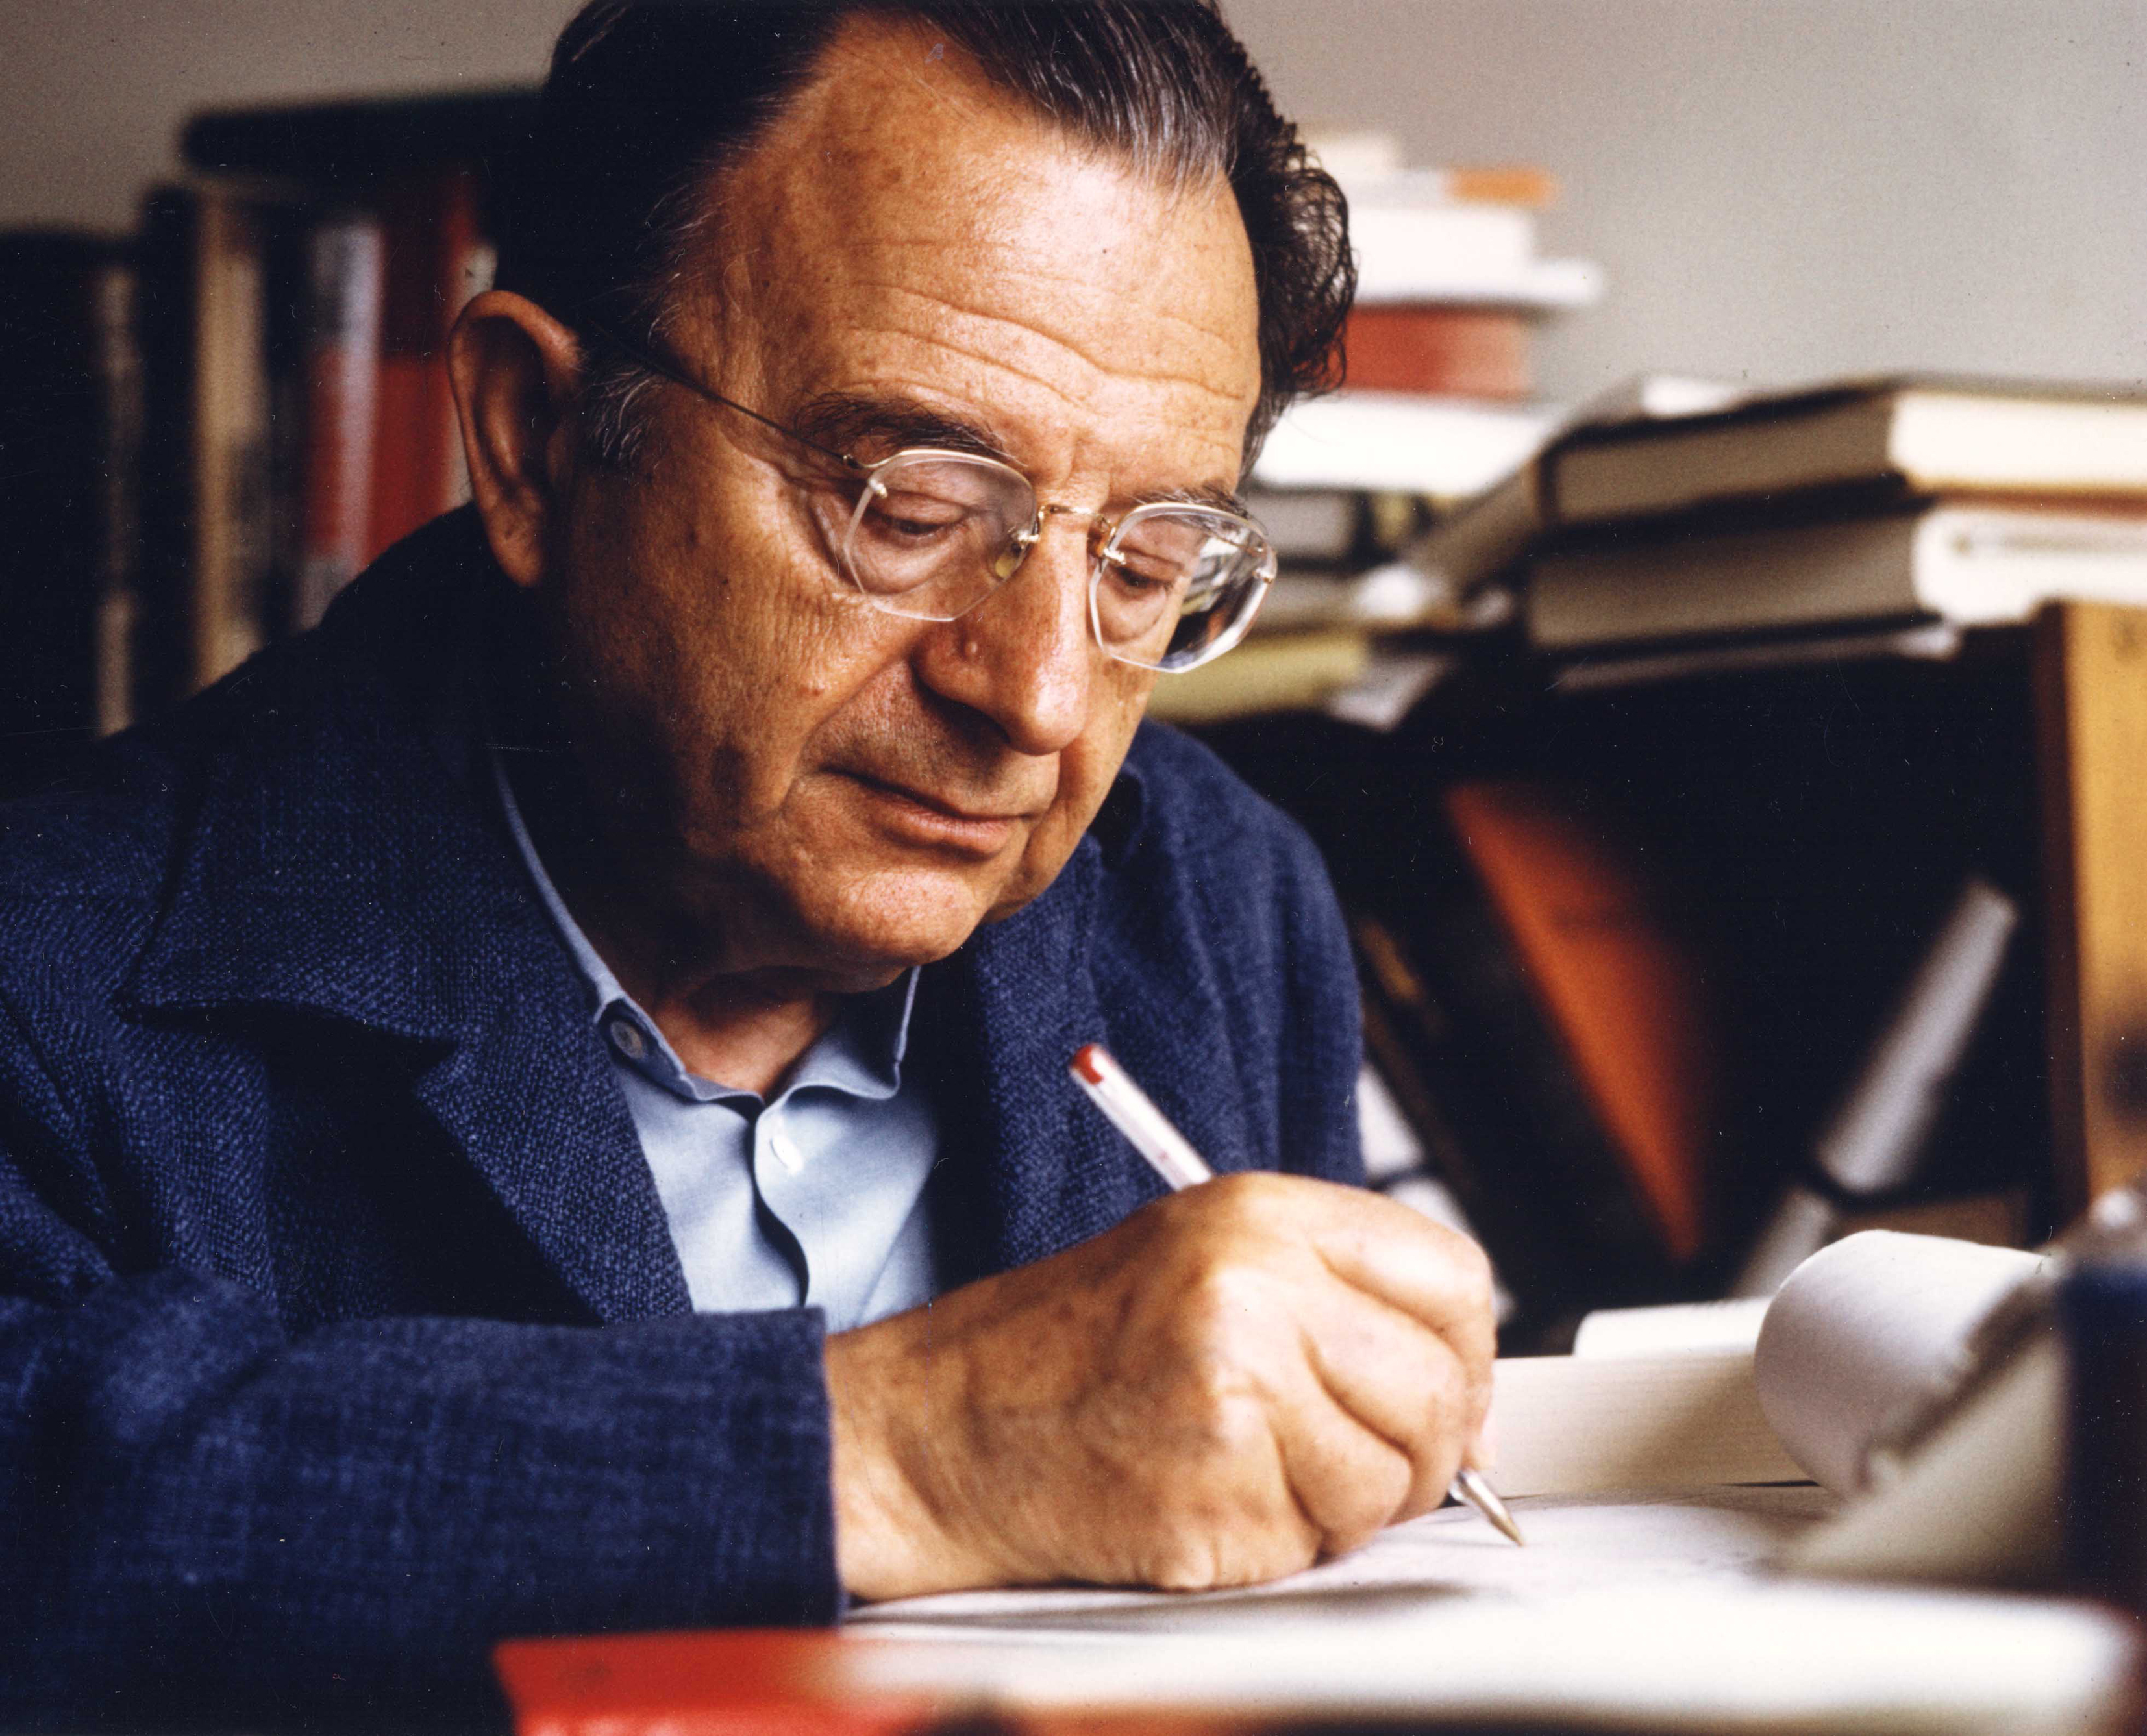 Erich_Fromm_1974 (1)